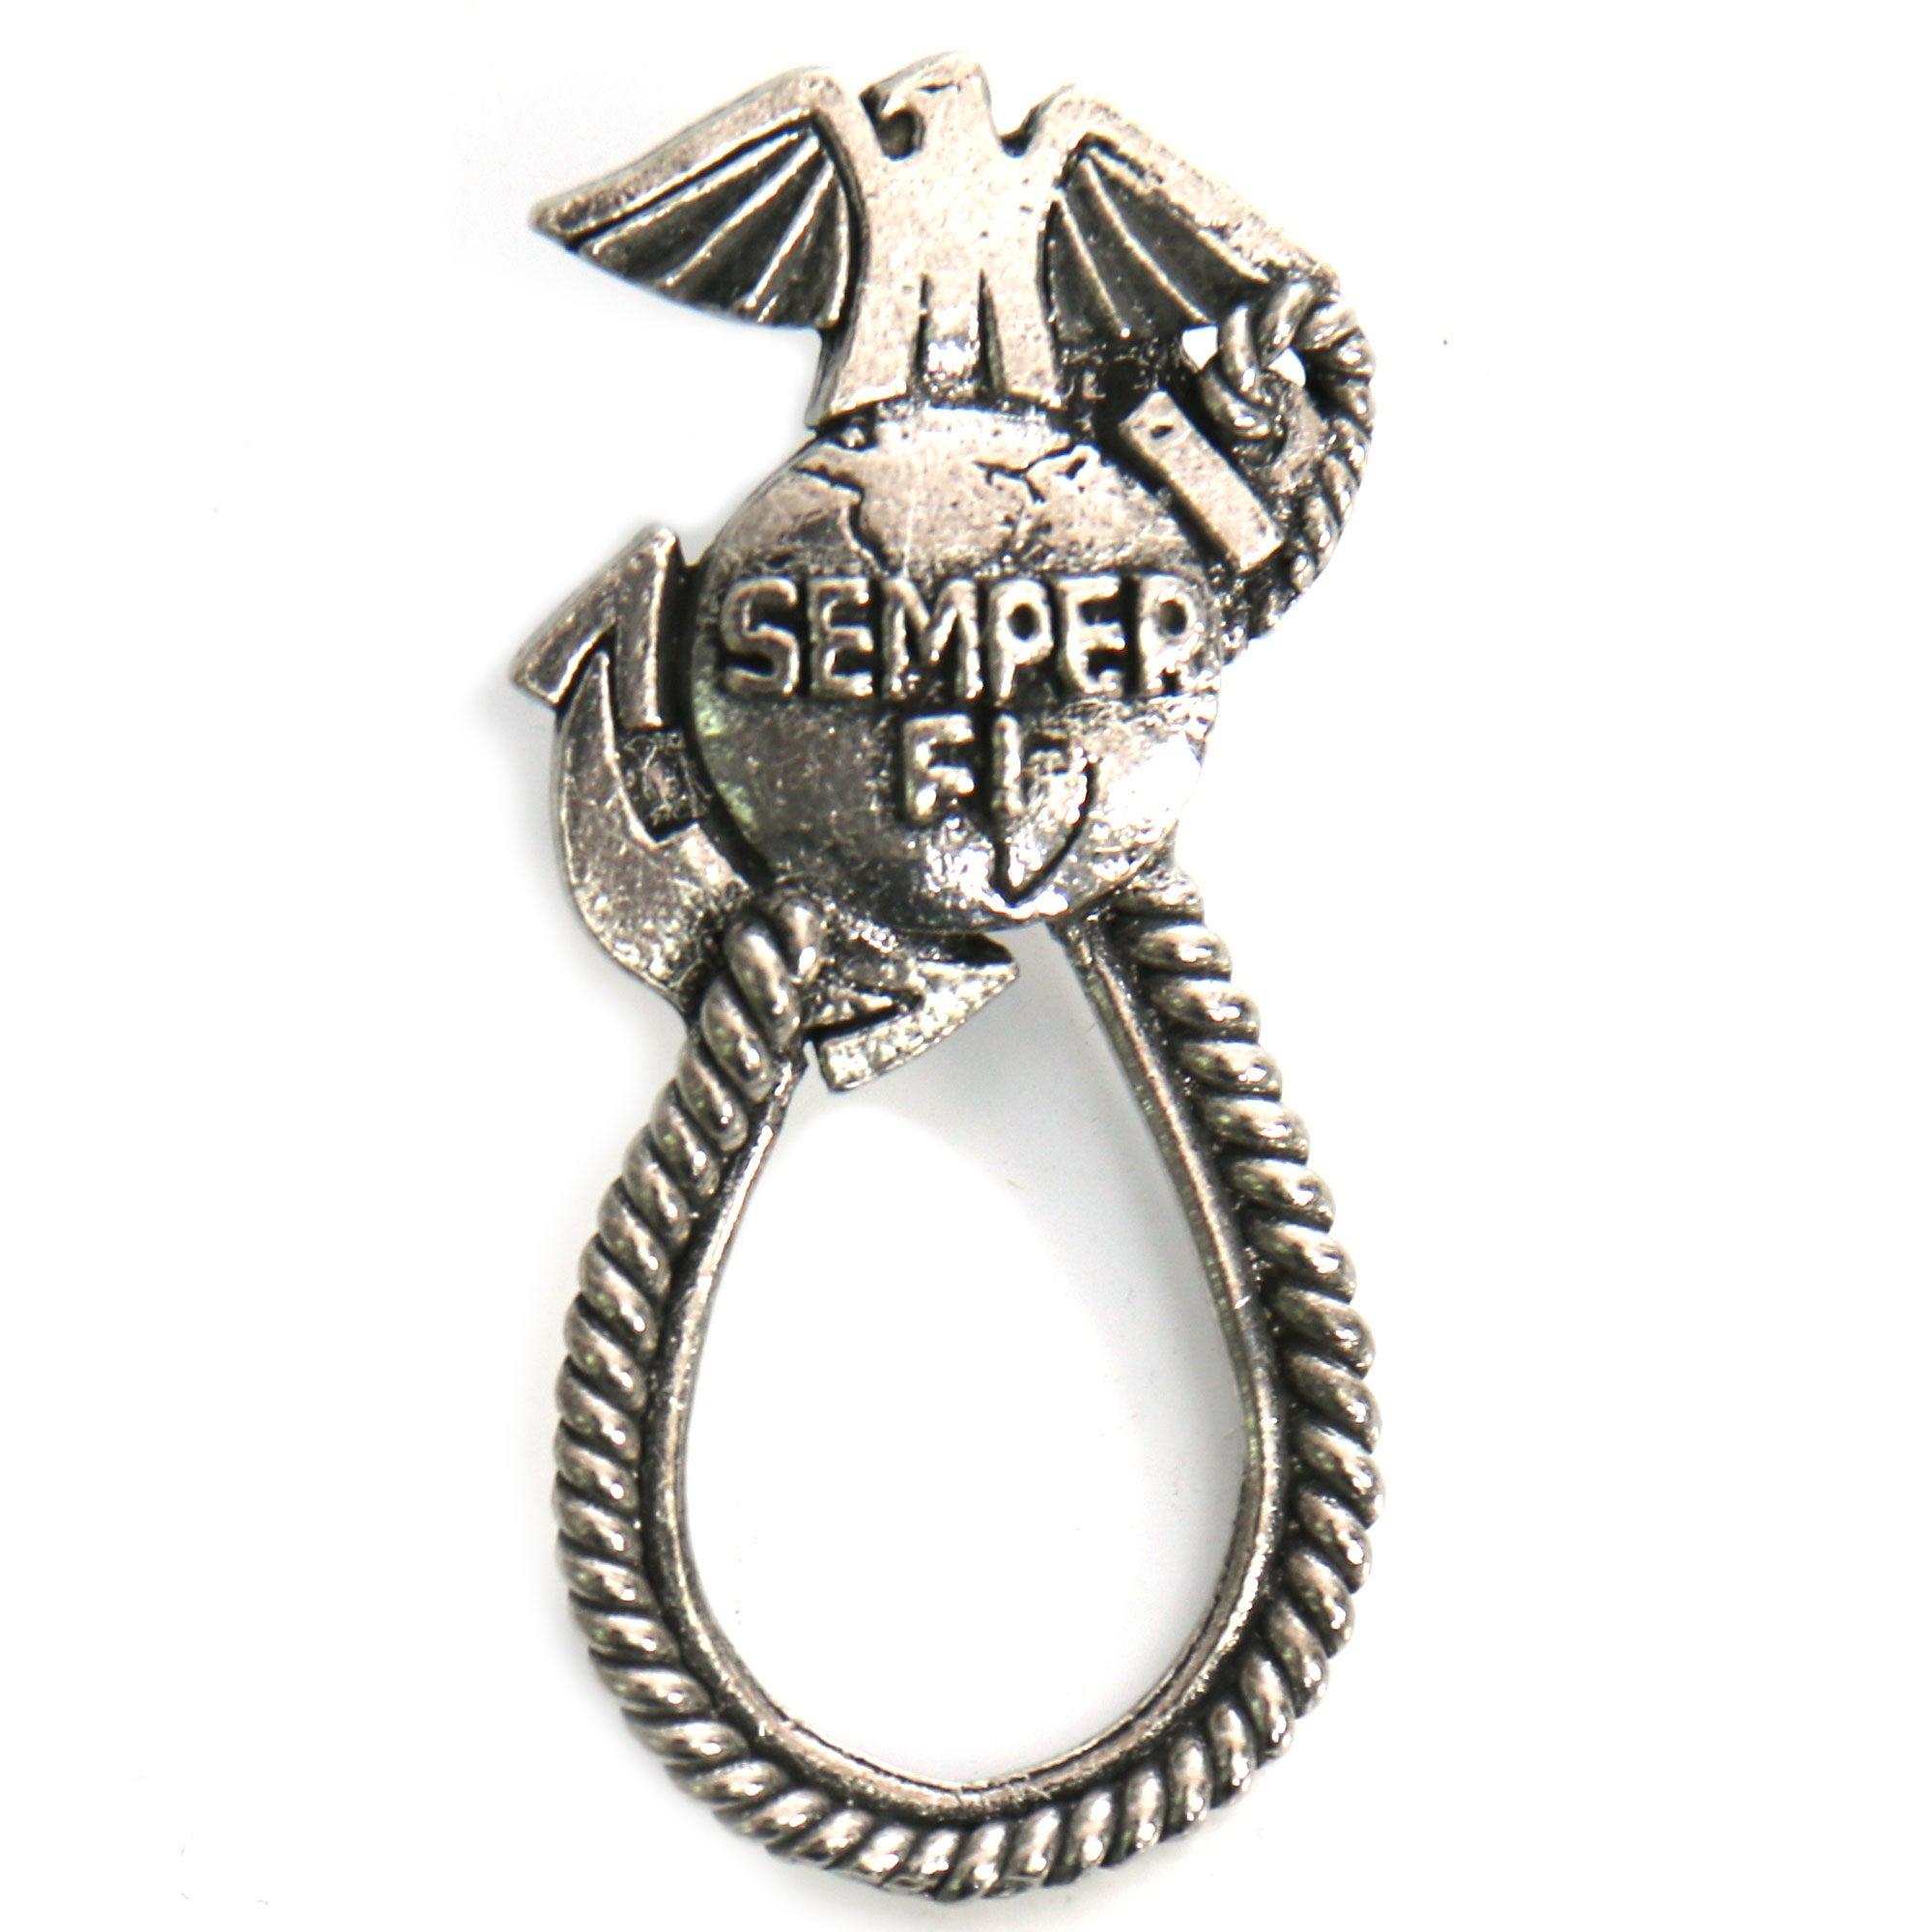 Hot Leathers Semper Fi Eyeglass Holder Pin